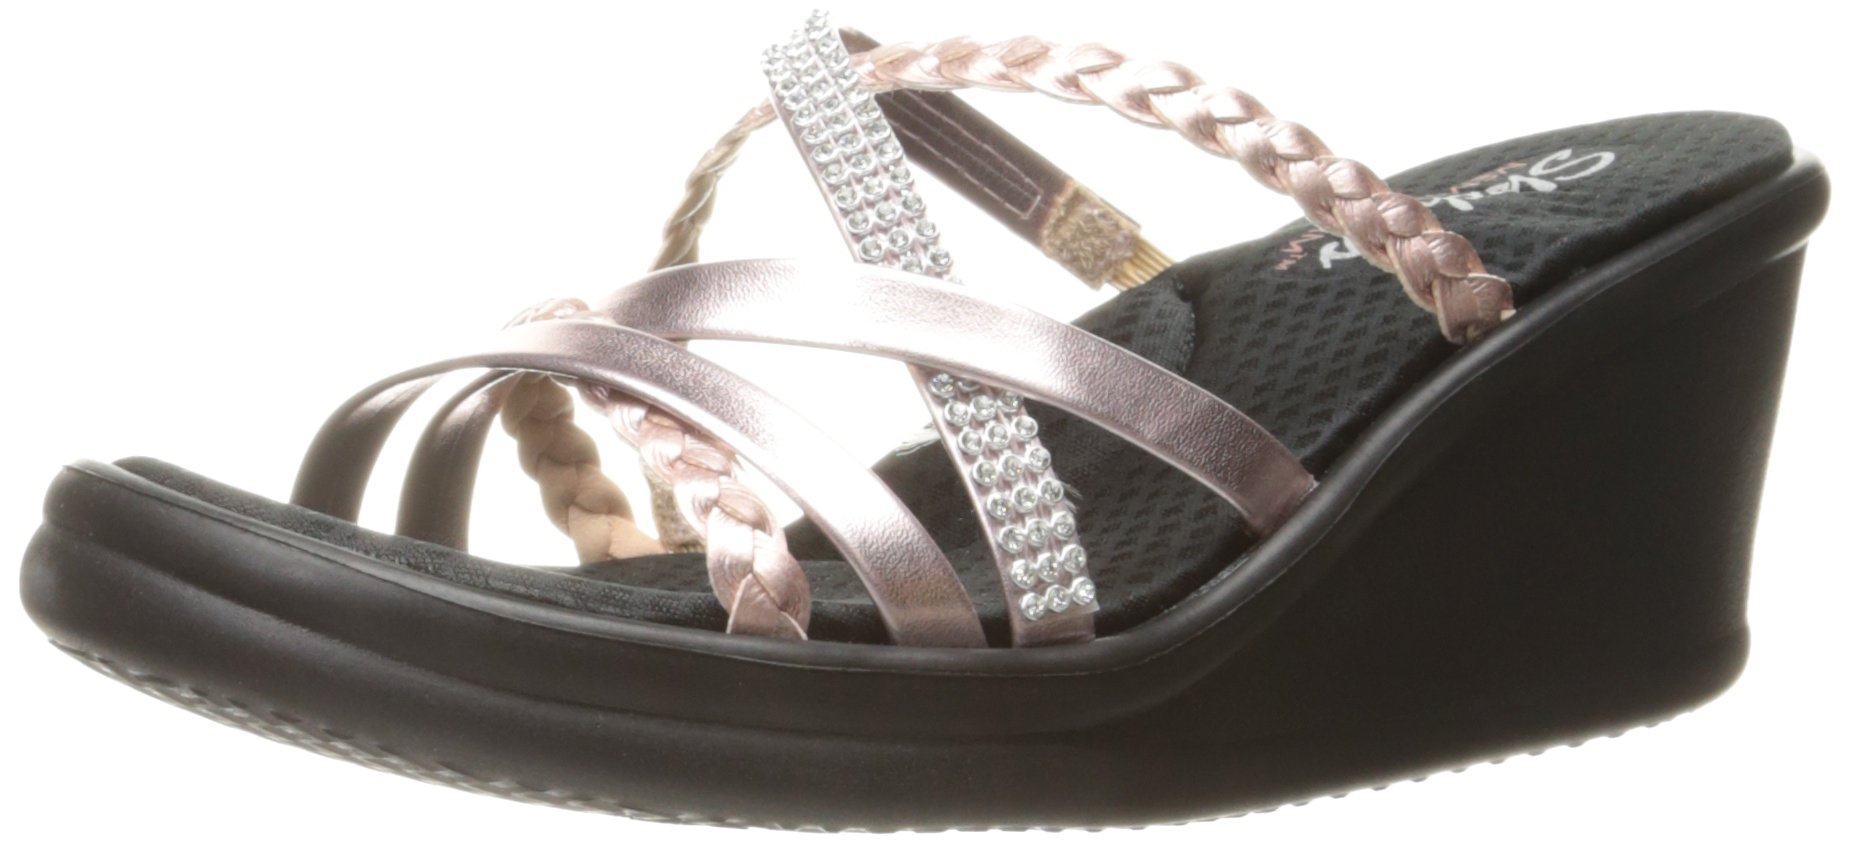 Skechers Cali Women's Rumblers-Social Butterfly Wedge Sandal,Rose Gold,8 M US